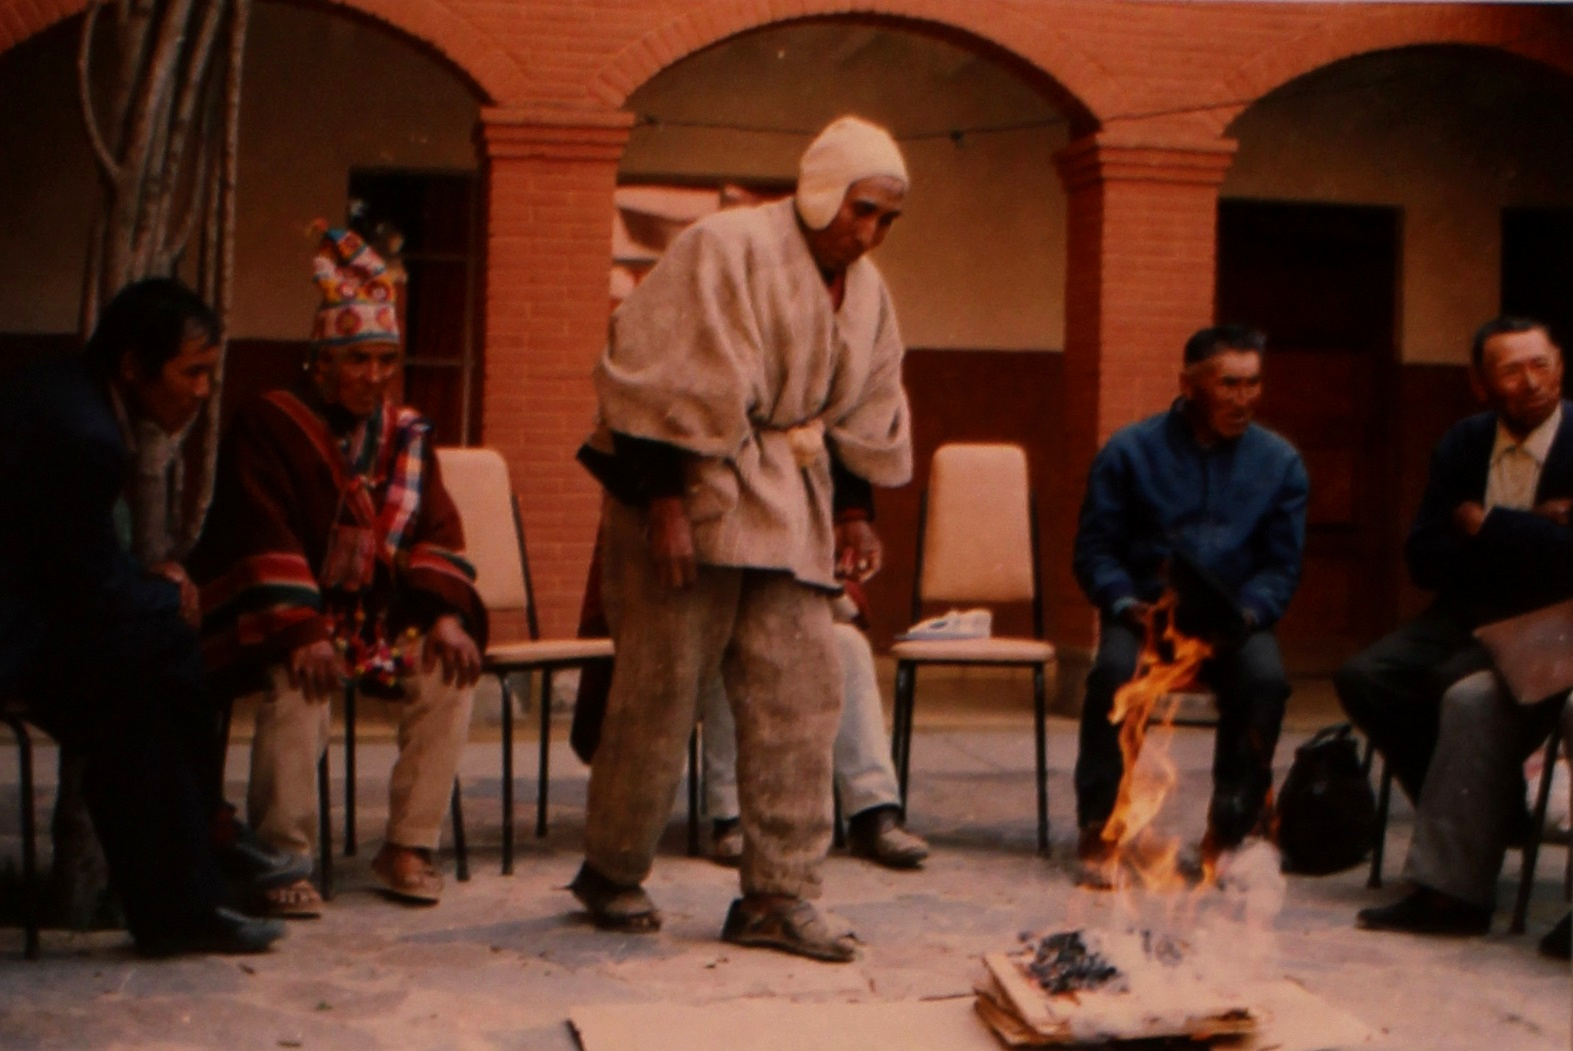 Don Lúcas Miranda, son of the indigenous leader Toribio Miranda, conducts an Andean ceremony during a gathering of indigenous elders in 1990. The meeting was organized by the THOA to collect oral histories on the struggle of the caciques apoderados, a network of early twentieth-century leaders who fought in defense of indigenous land and communities. Courtesy of the Andean Oral History Workshop.